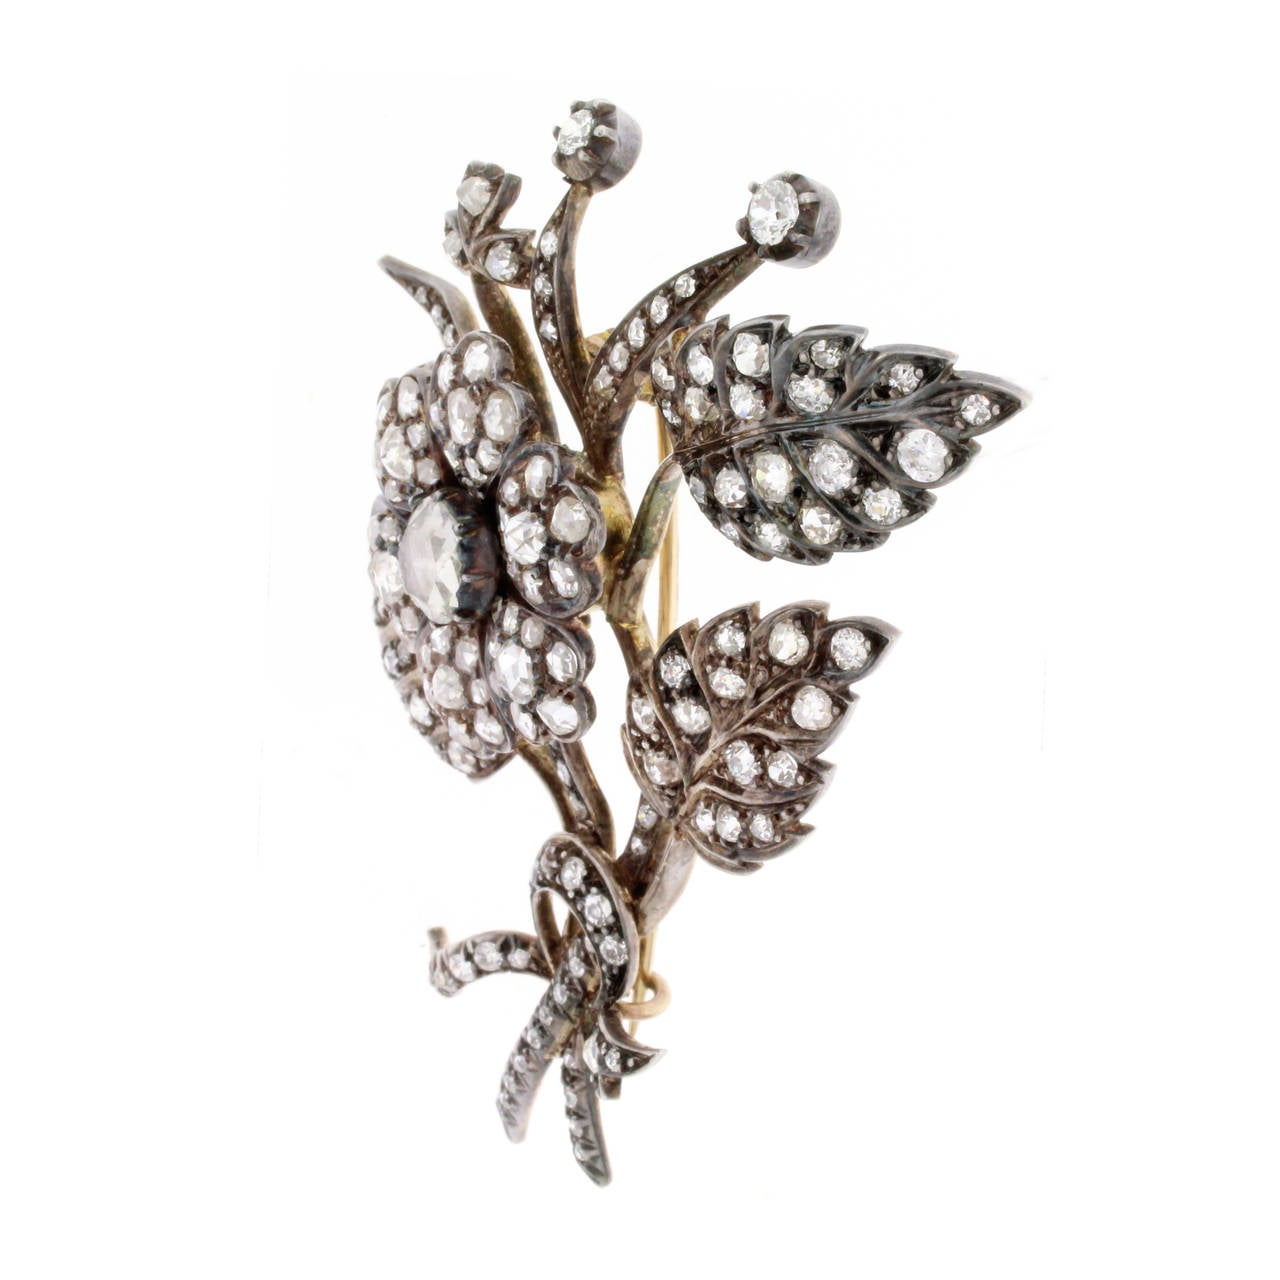 Victorian En Tremblant Diamond Silver Gold Floral Brooch In Good Condition For Sale In Washington, DC